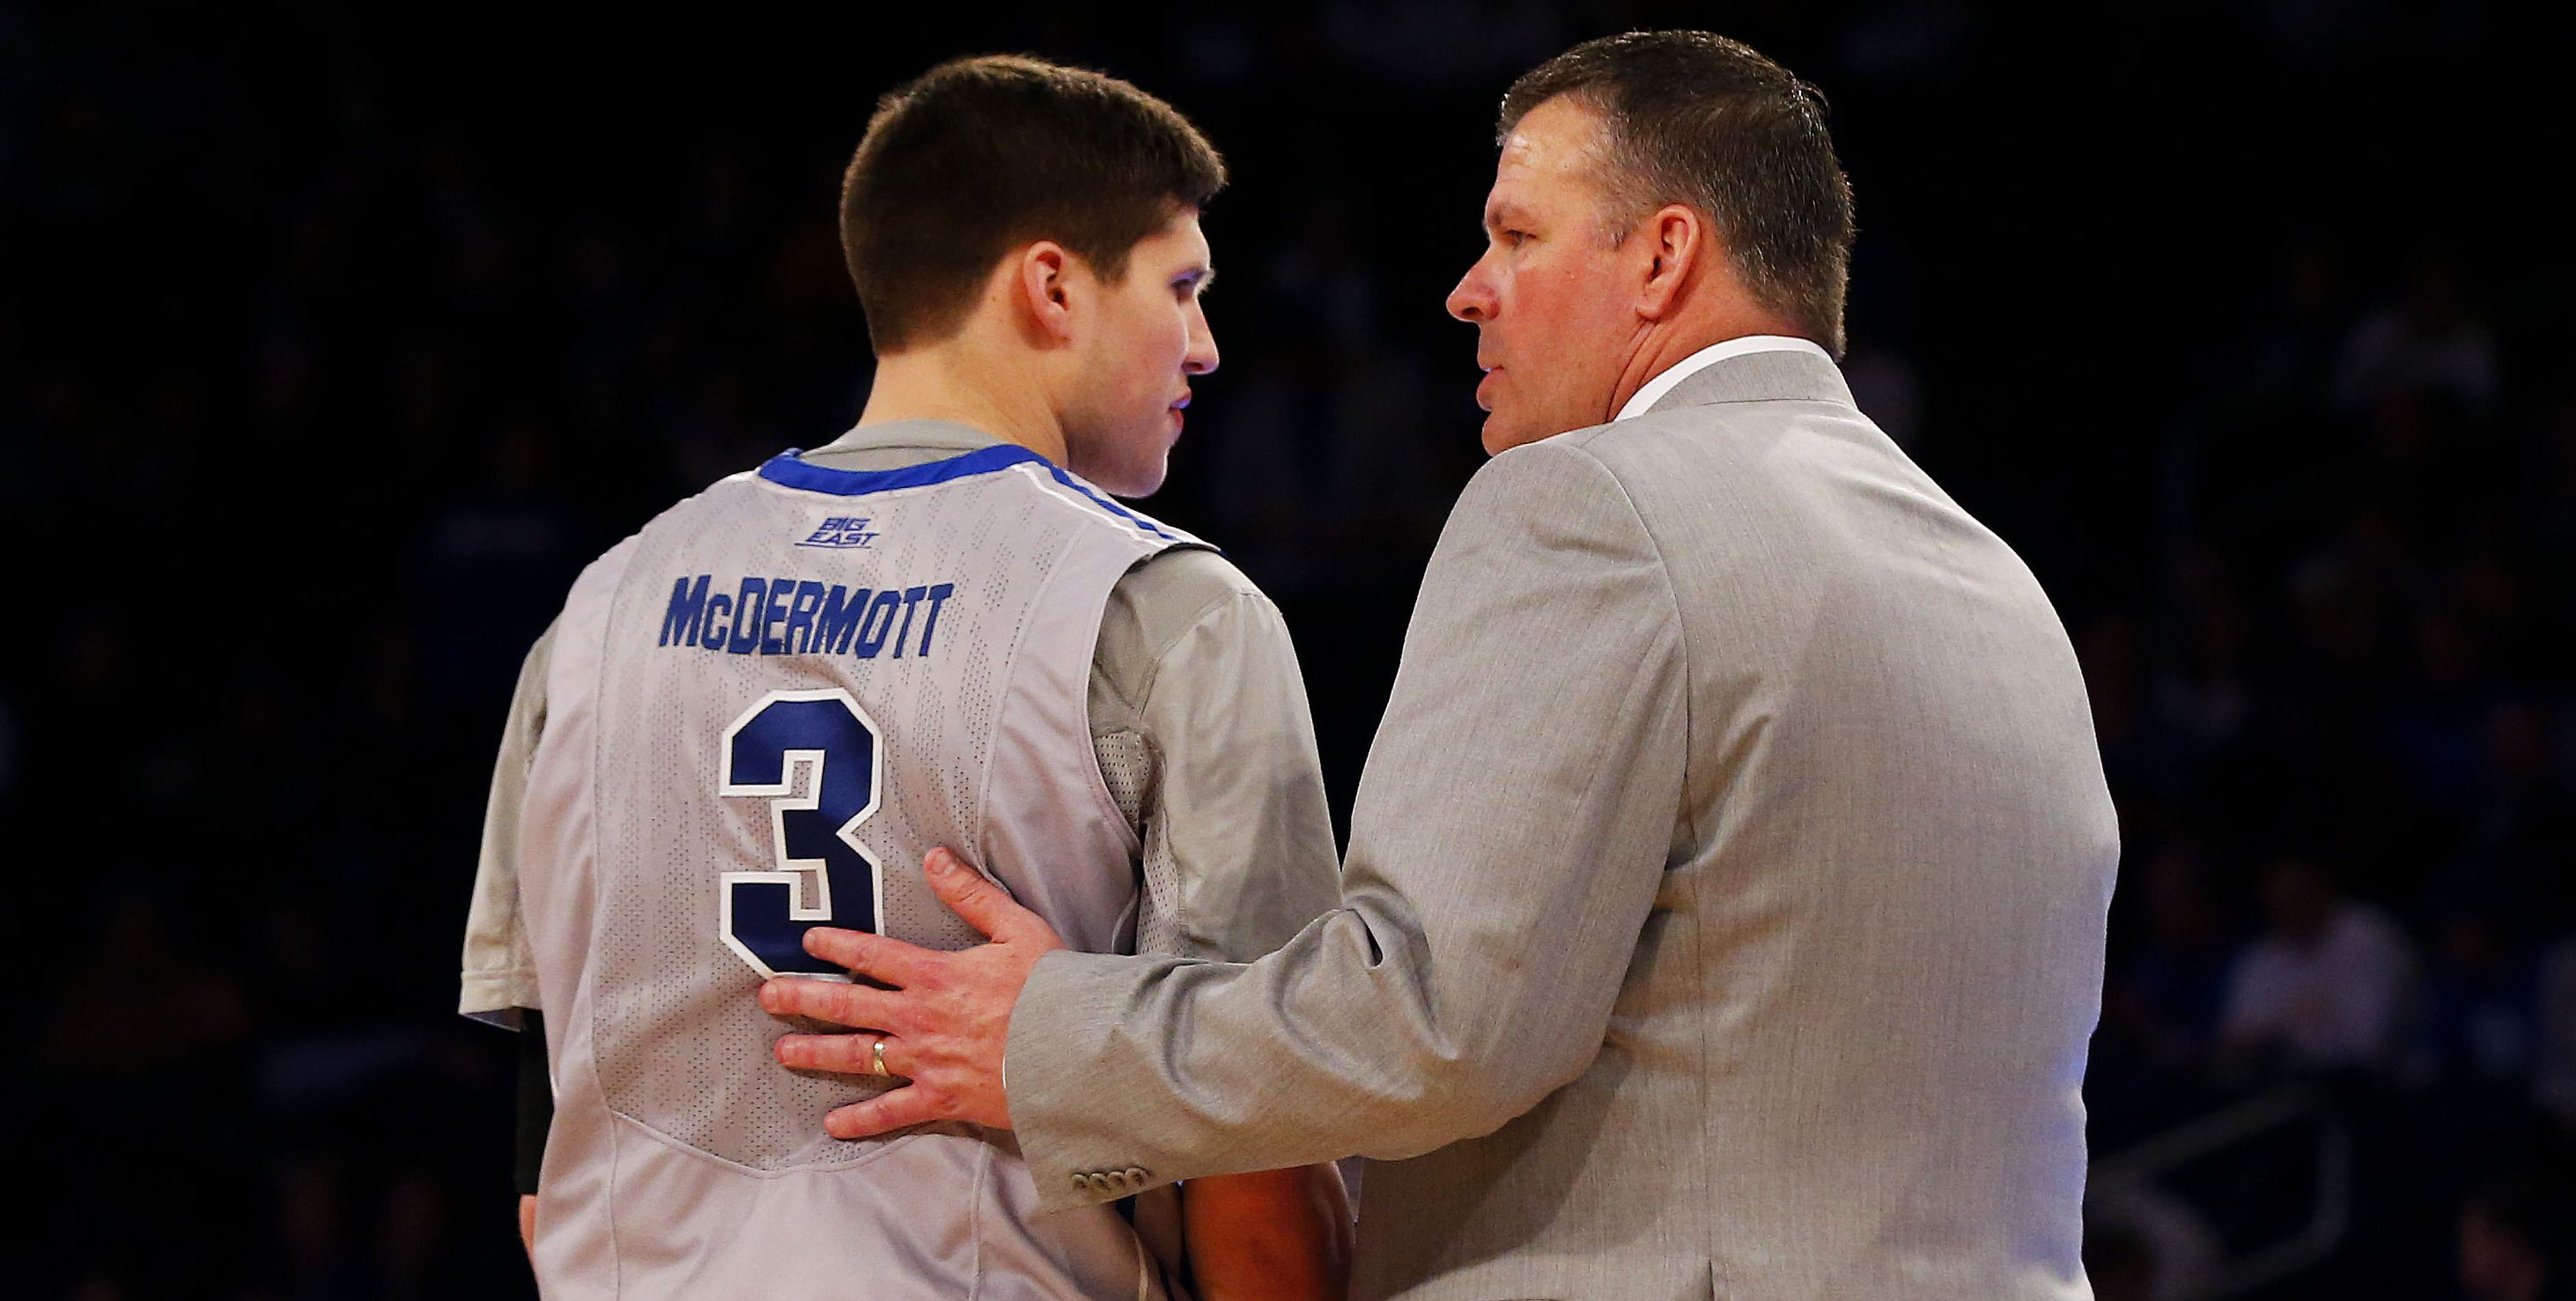 NEW YORK, NY - MARCH 14: Head coach Greg McDermott talks to his son Doug McDermott #3 of the Creighton Bluejays in the second half against the Xavier Musketeers during the Semifinals of the 2014 Men's Big East Basketball Tournament at Madison Square Garden on March 14, 2014 in New York City. (Photo by Jim McIsaac/Getty Images)